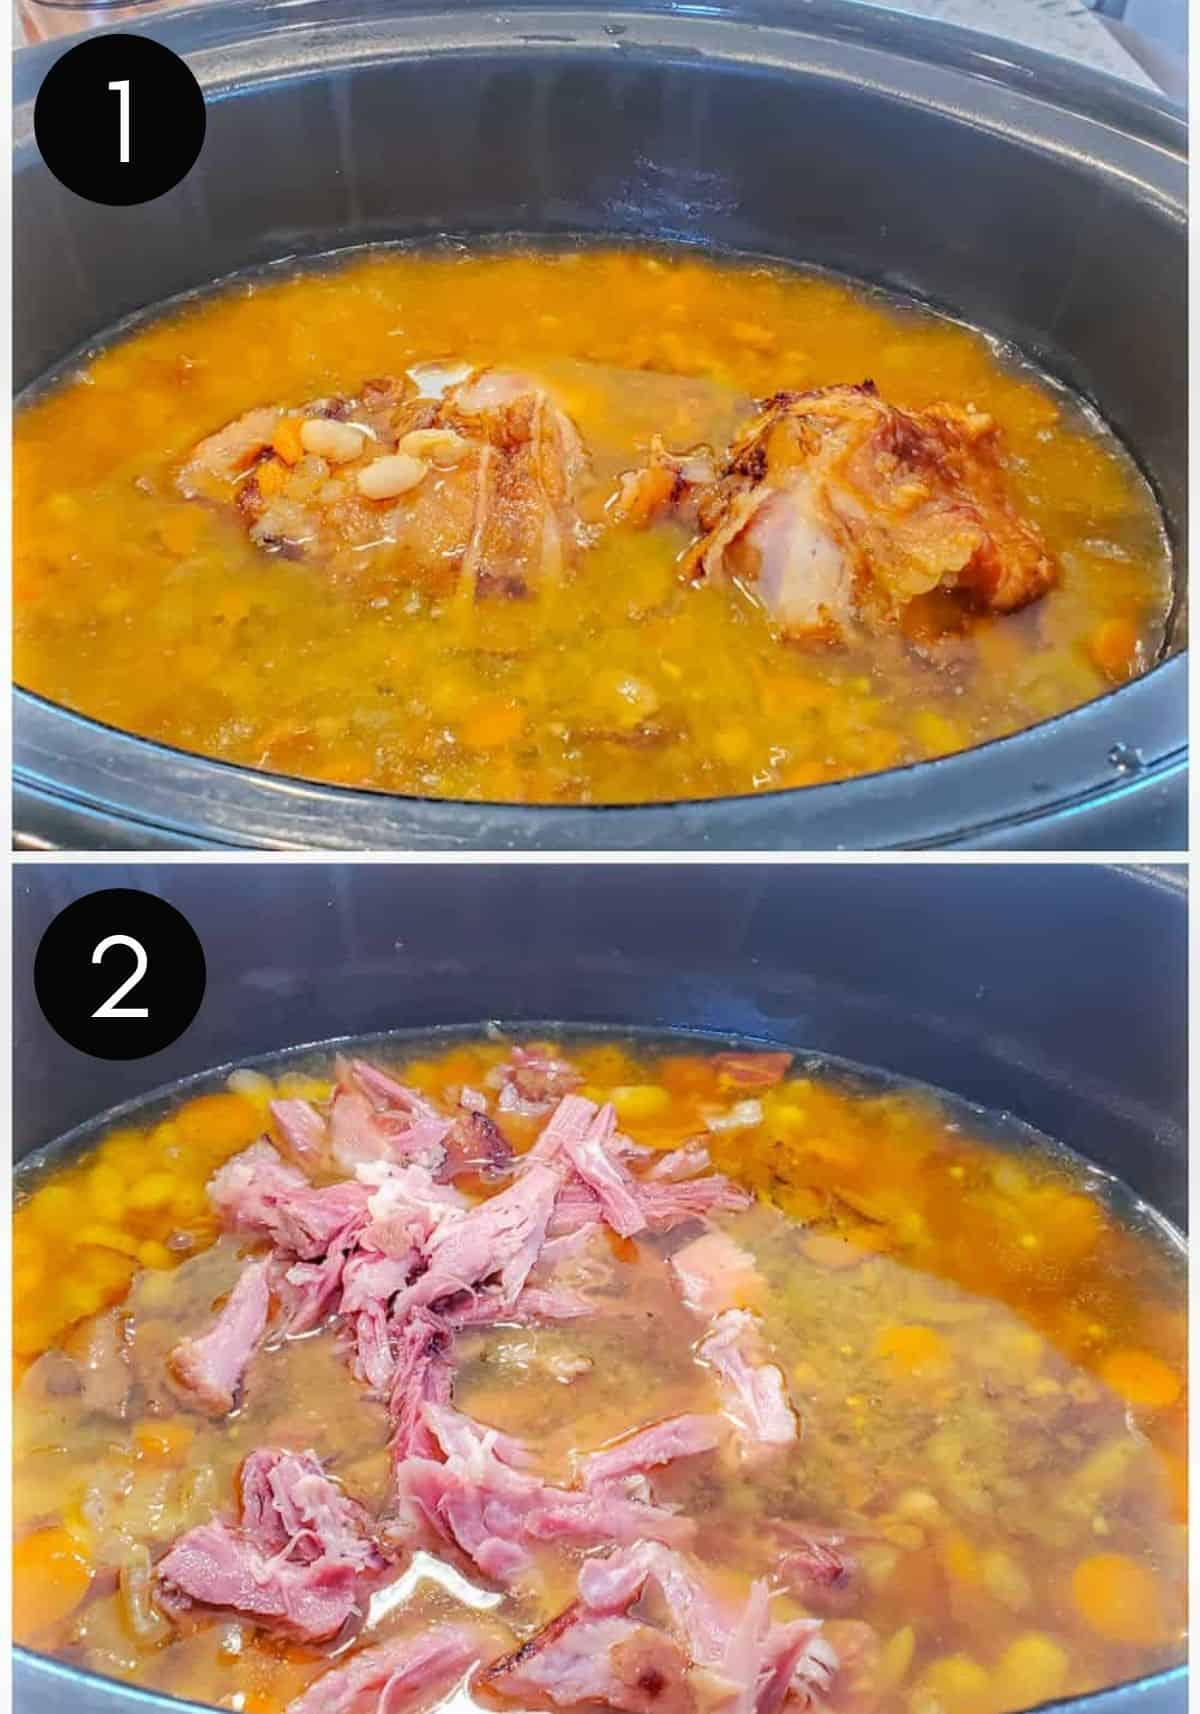 Ham and bean soup prep images in crockpot.